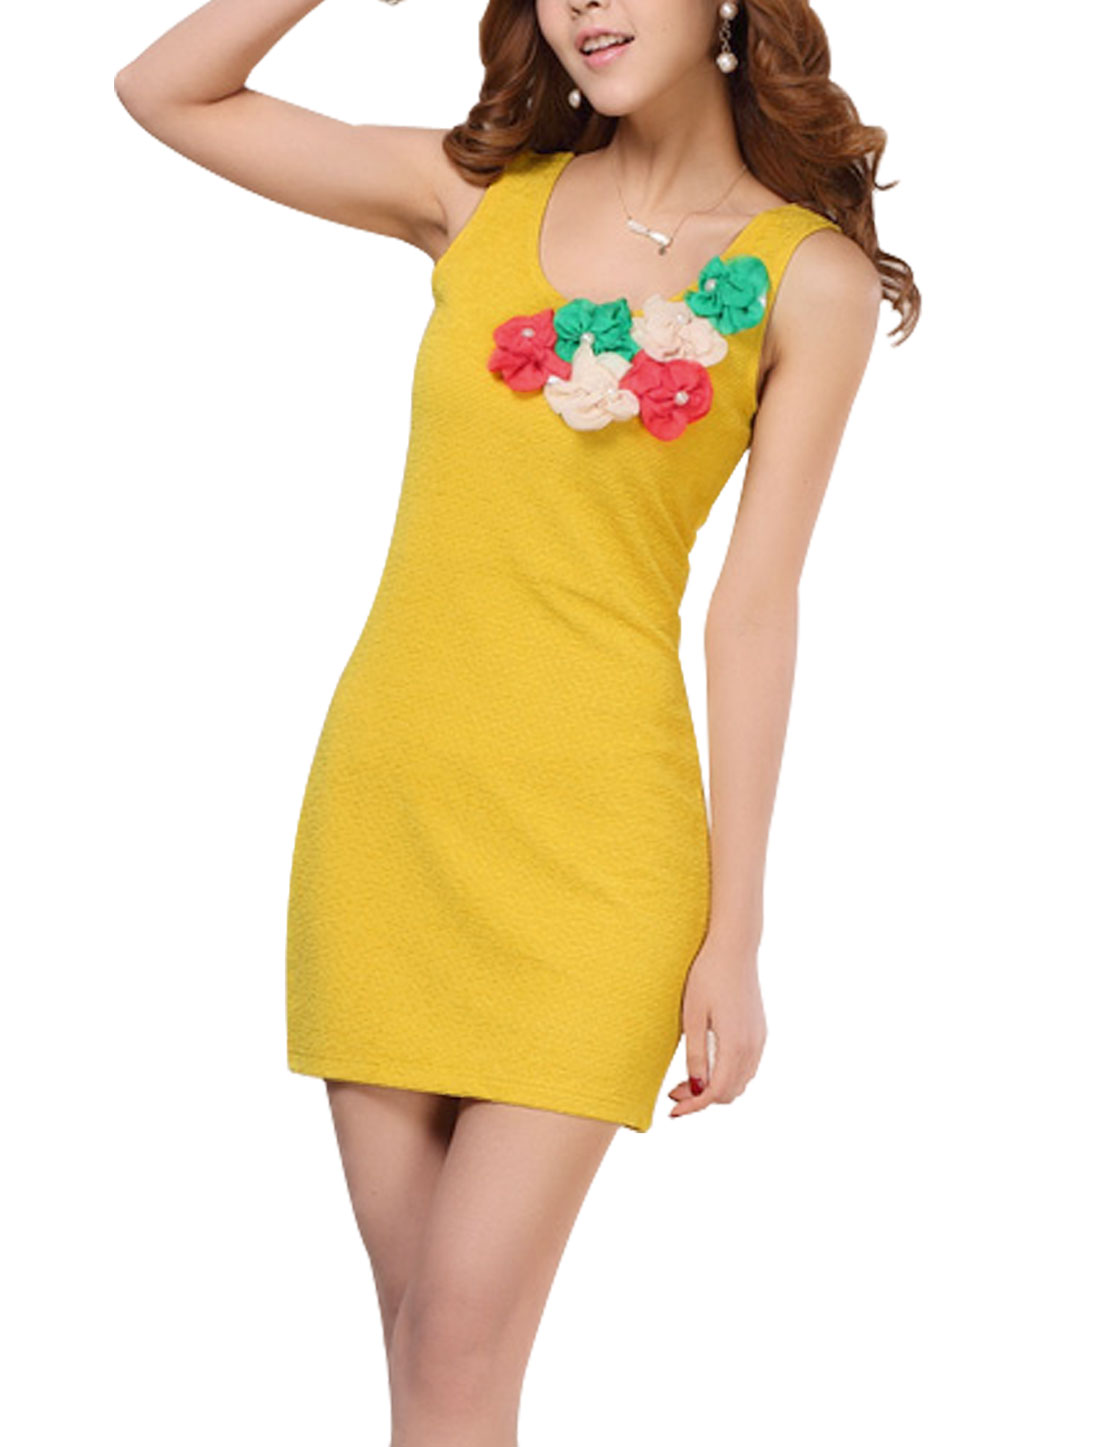 Lady Scoop Neck Flower Decor Plastic Pearl Decor Decor Dress Yellow M